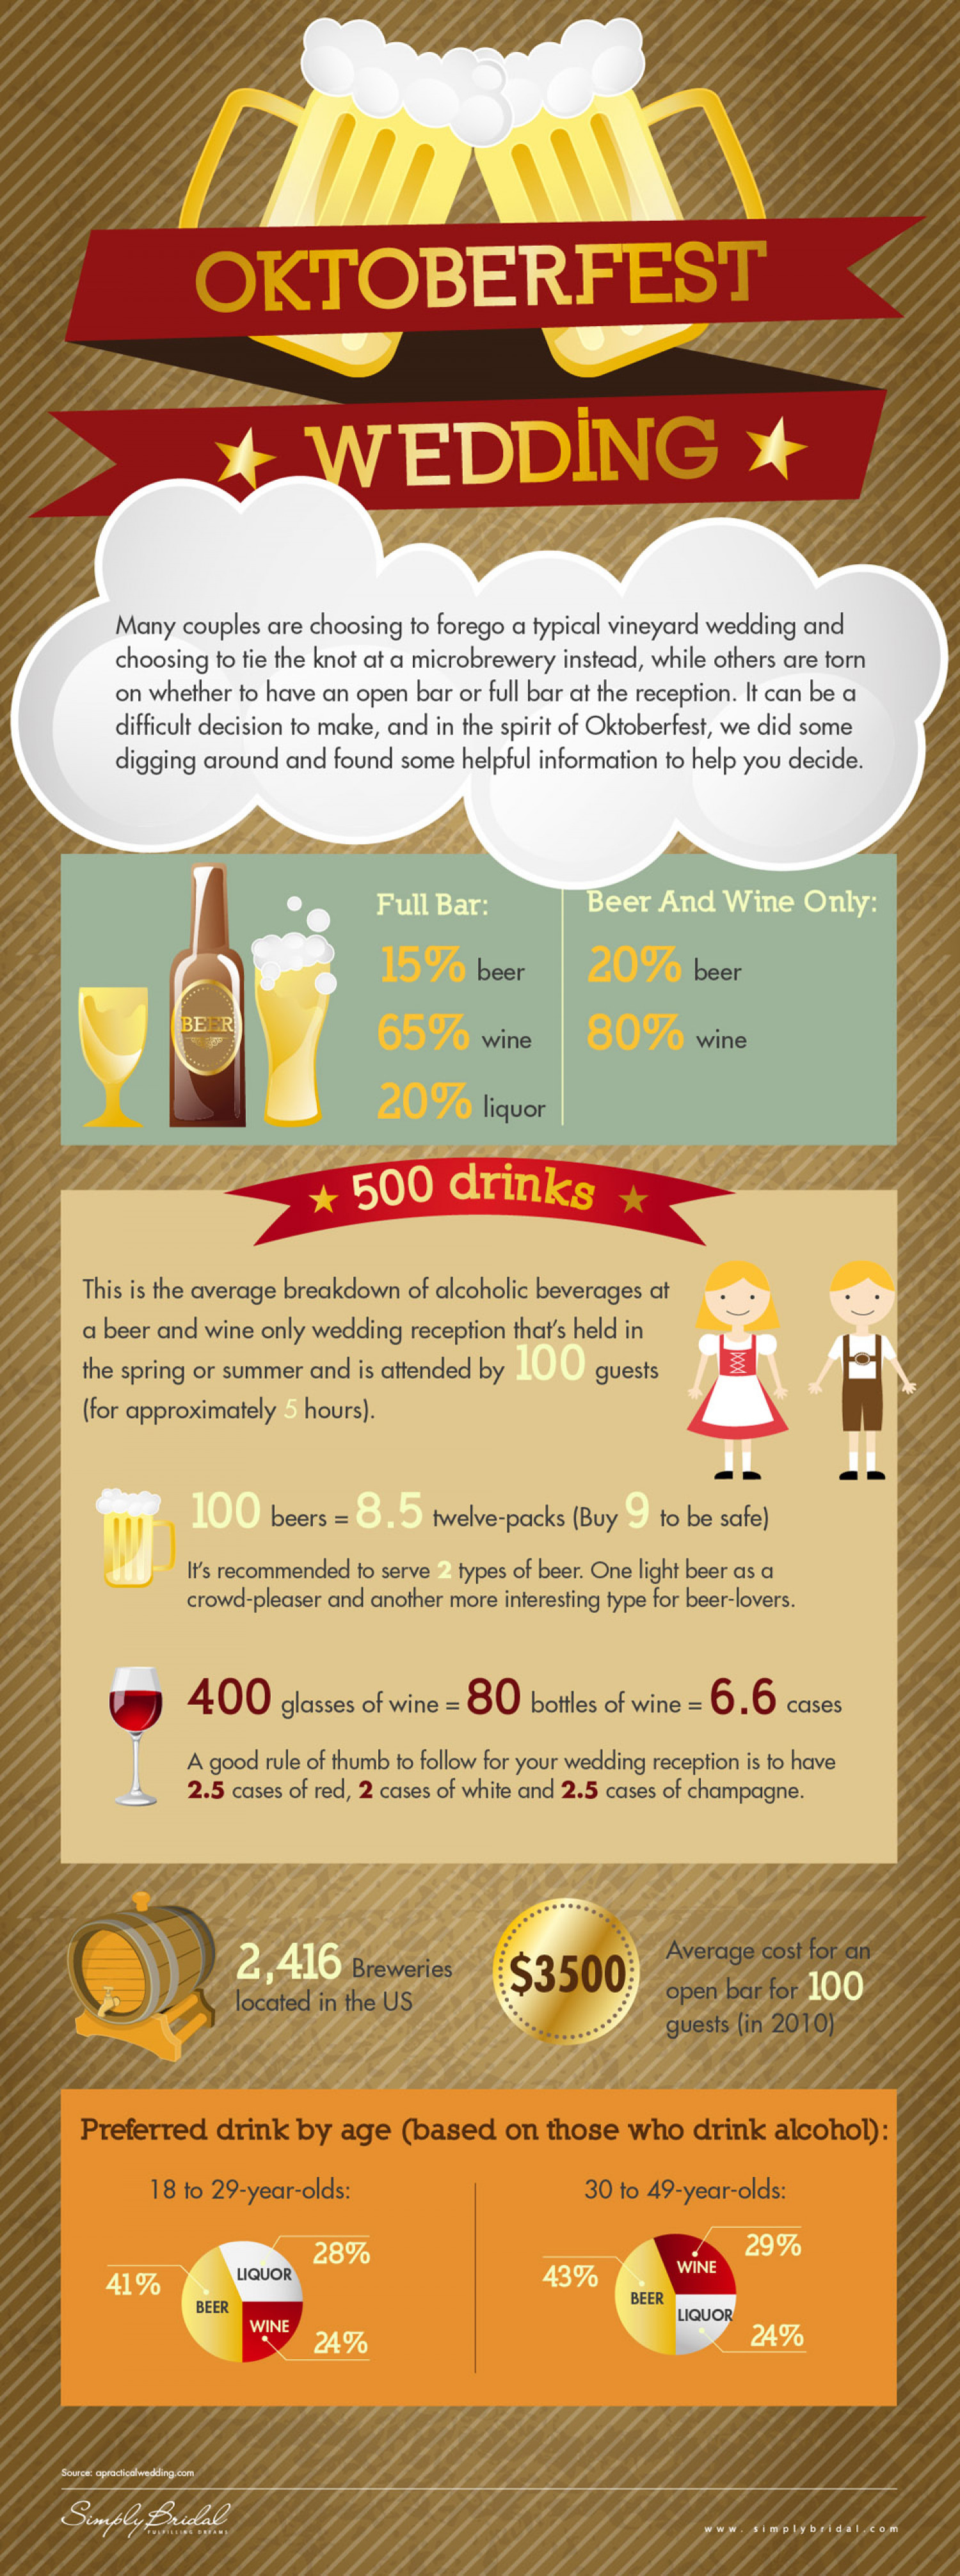 Oktoberfest Weddings Infographic